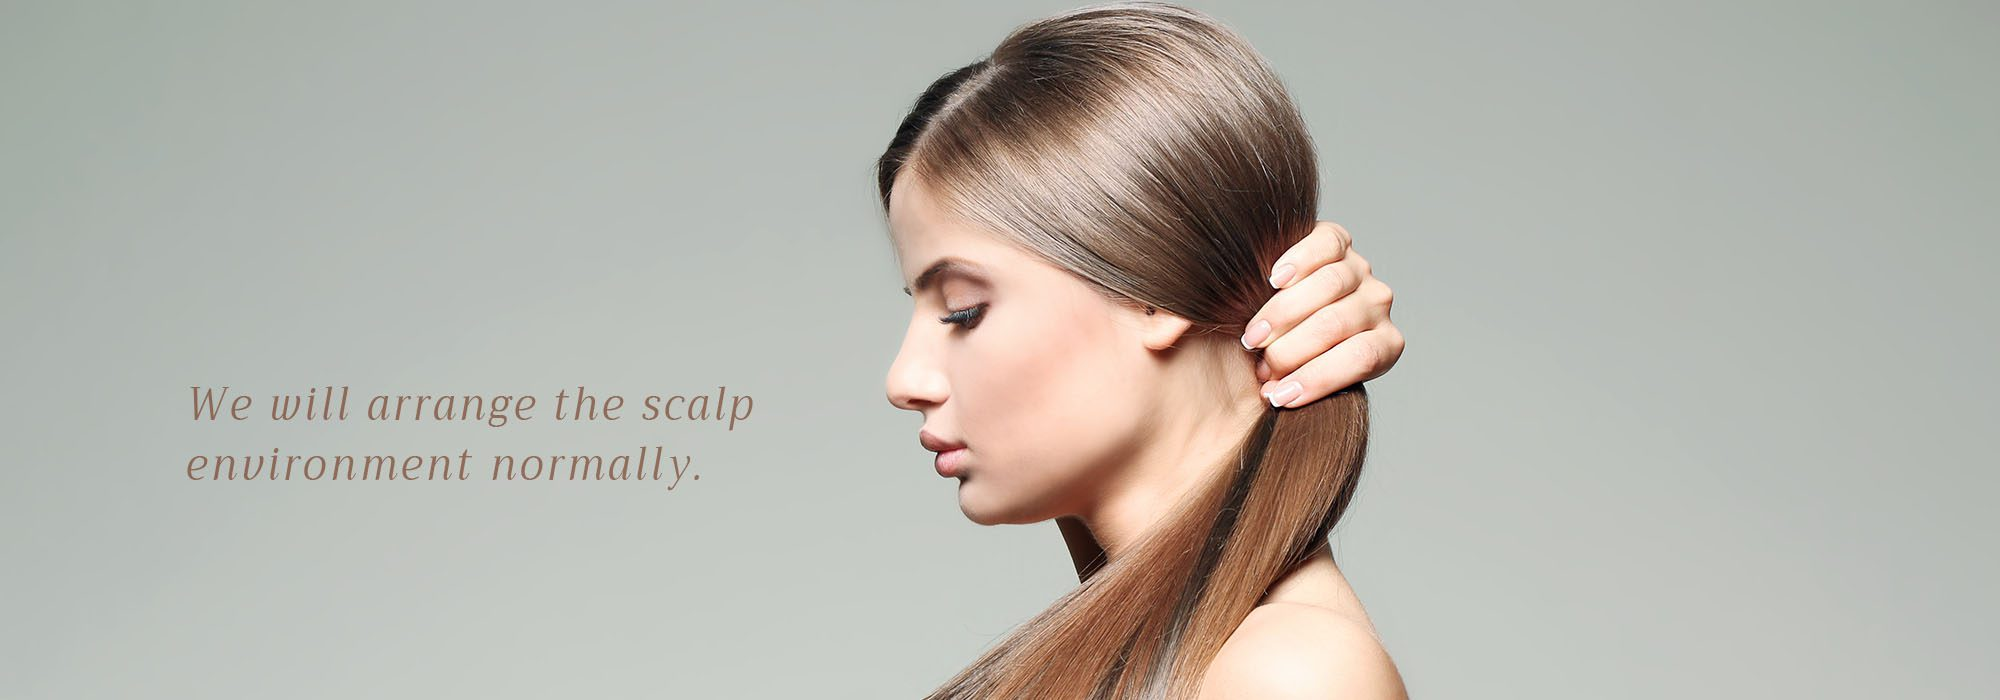 We will arrange the scalp environment normally